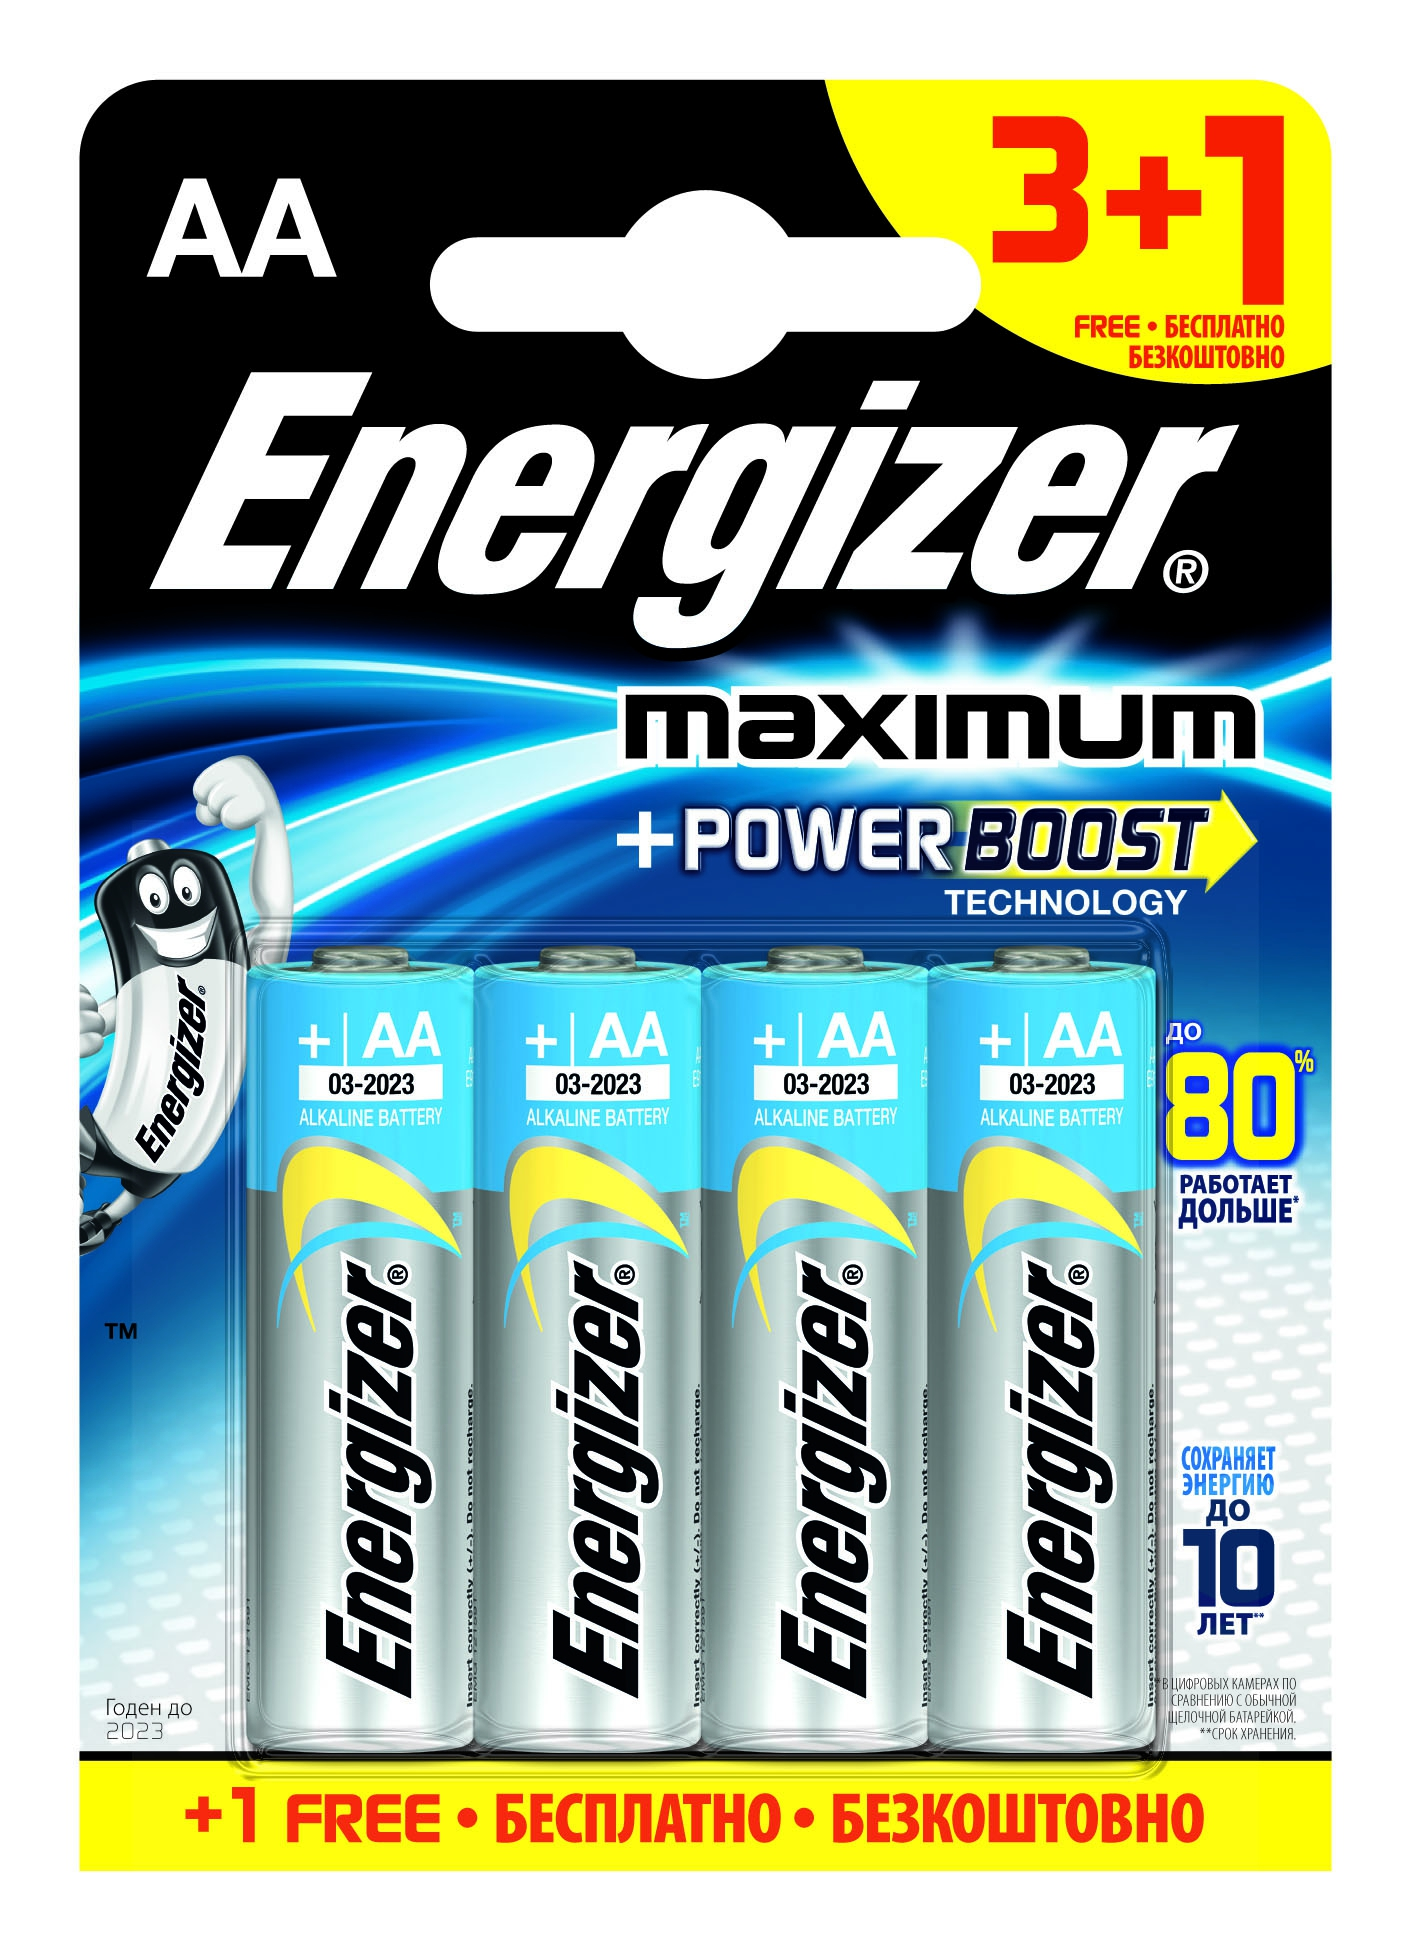 Элементы питания Energizer Energizer Maximum AA Промо 4 шт батарейки energizer alkaline power ааа 8 шт